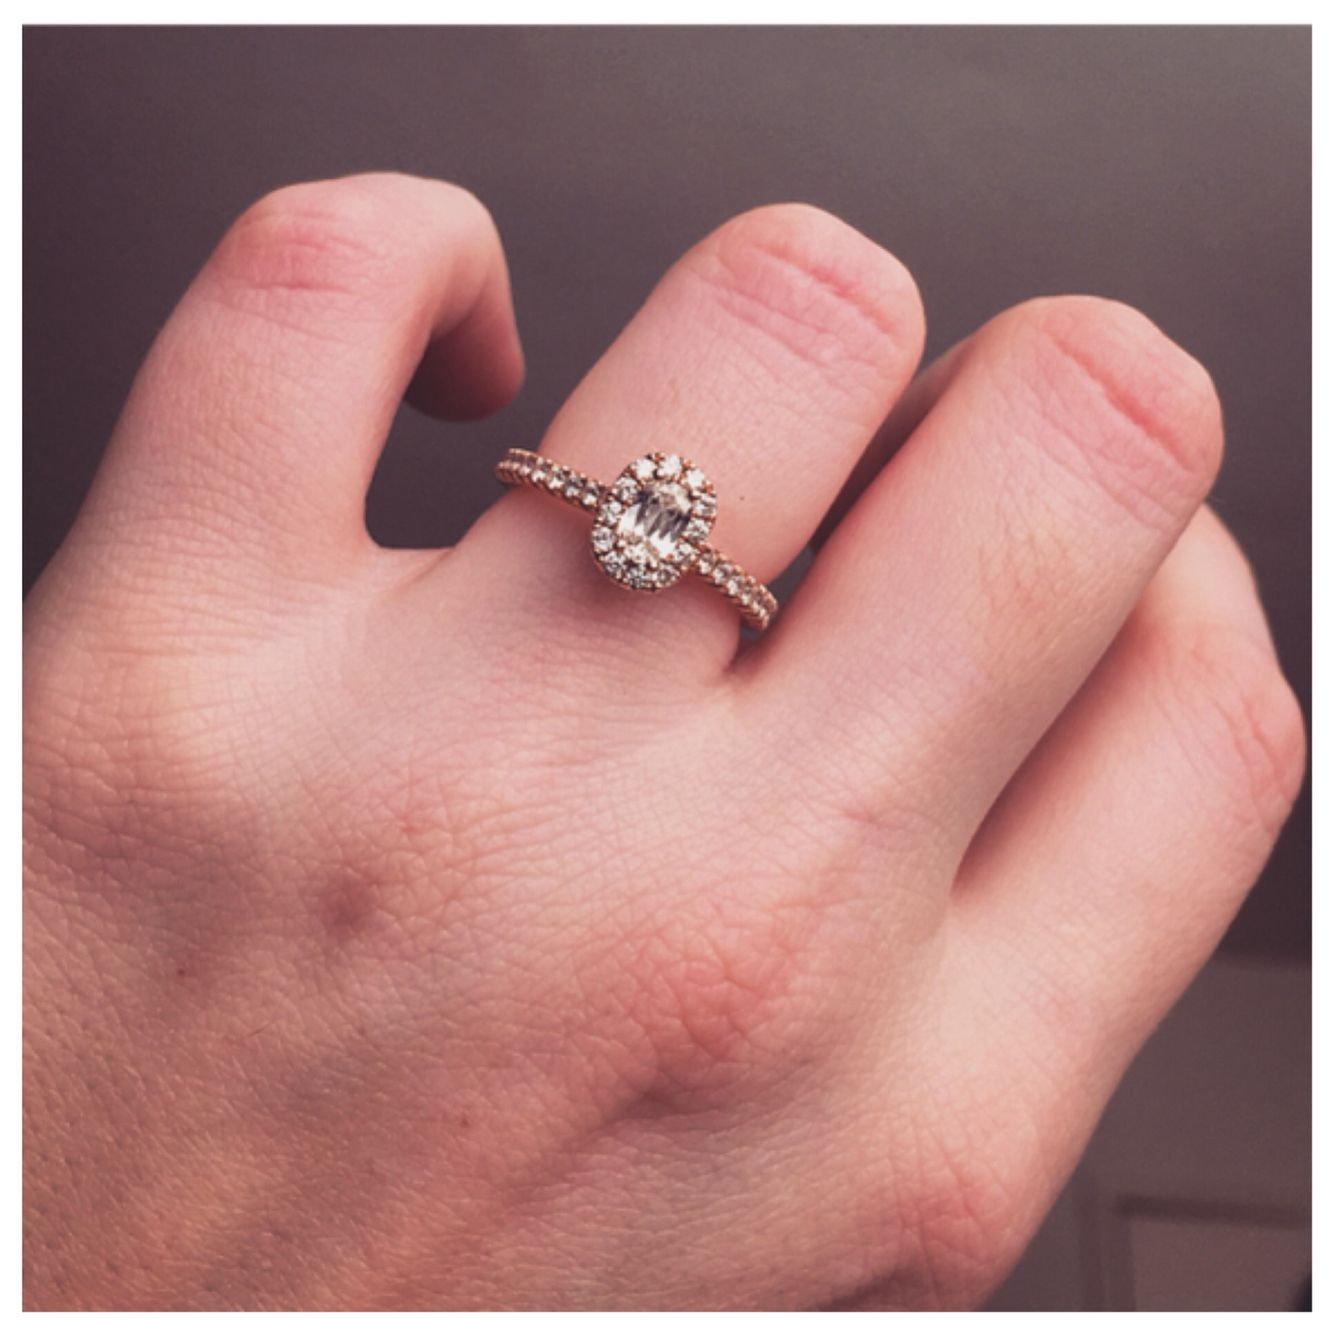 Aspiri Rose Gold Halo Cushion Cut Diamond Engagement Ring. 2/14/15<3 ...